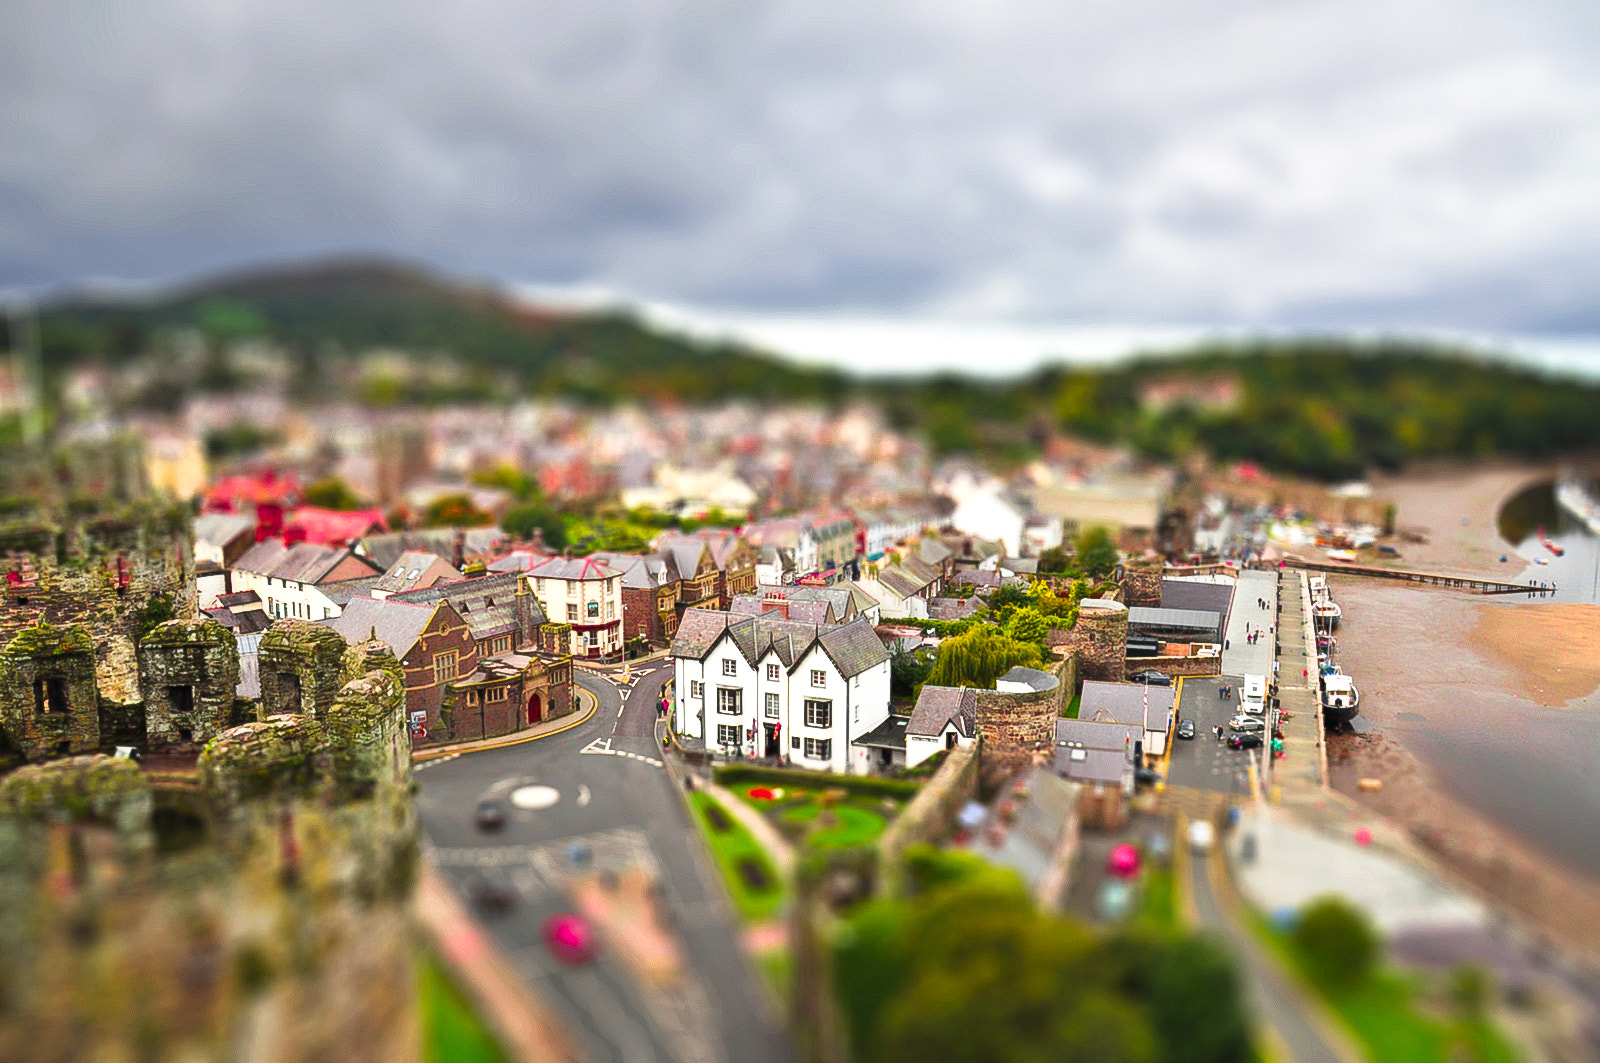 Photograph Conwy Town by Imran Azhar on 500px